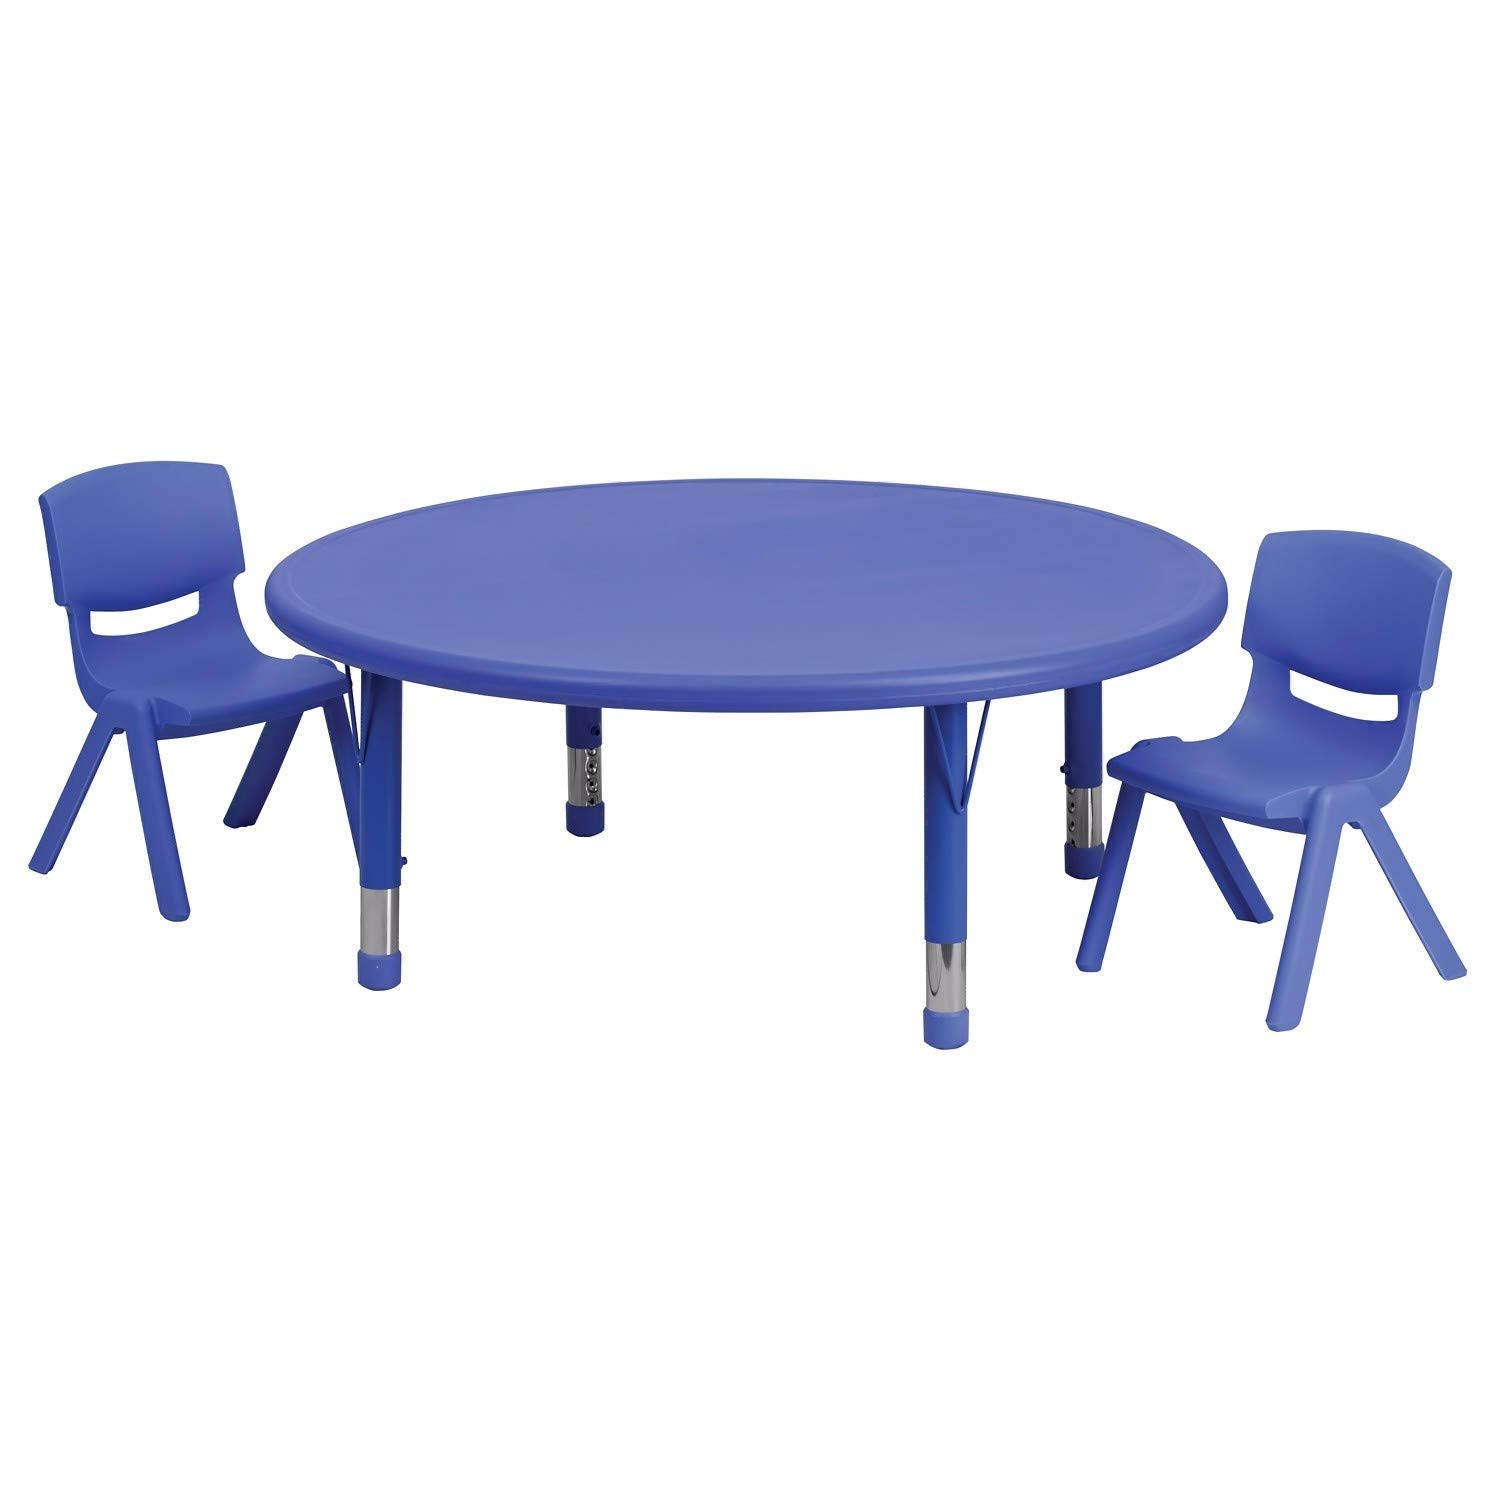 Offex 45'' Round Plastic Height Adjustable Activity Table Set with 2 Chairs - Blue